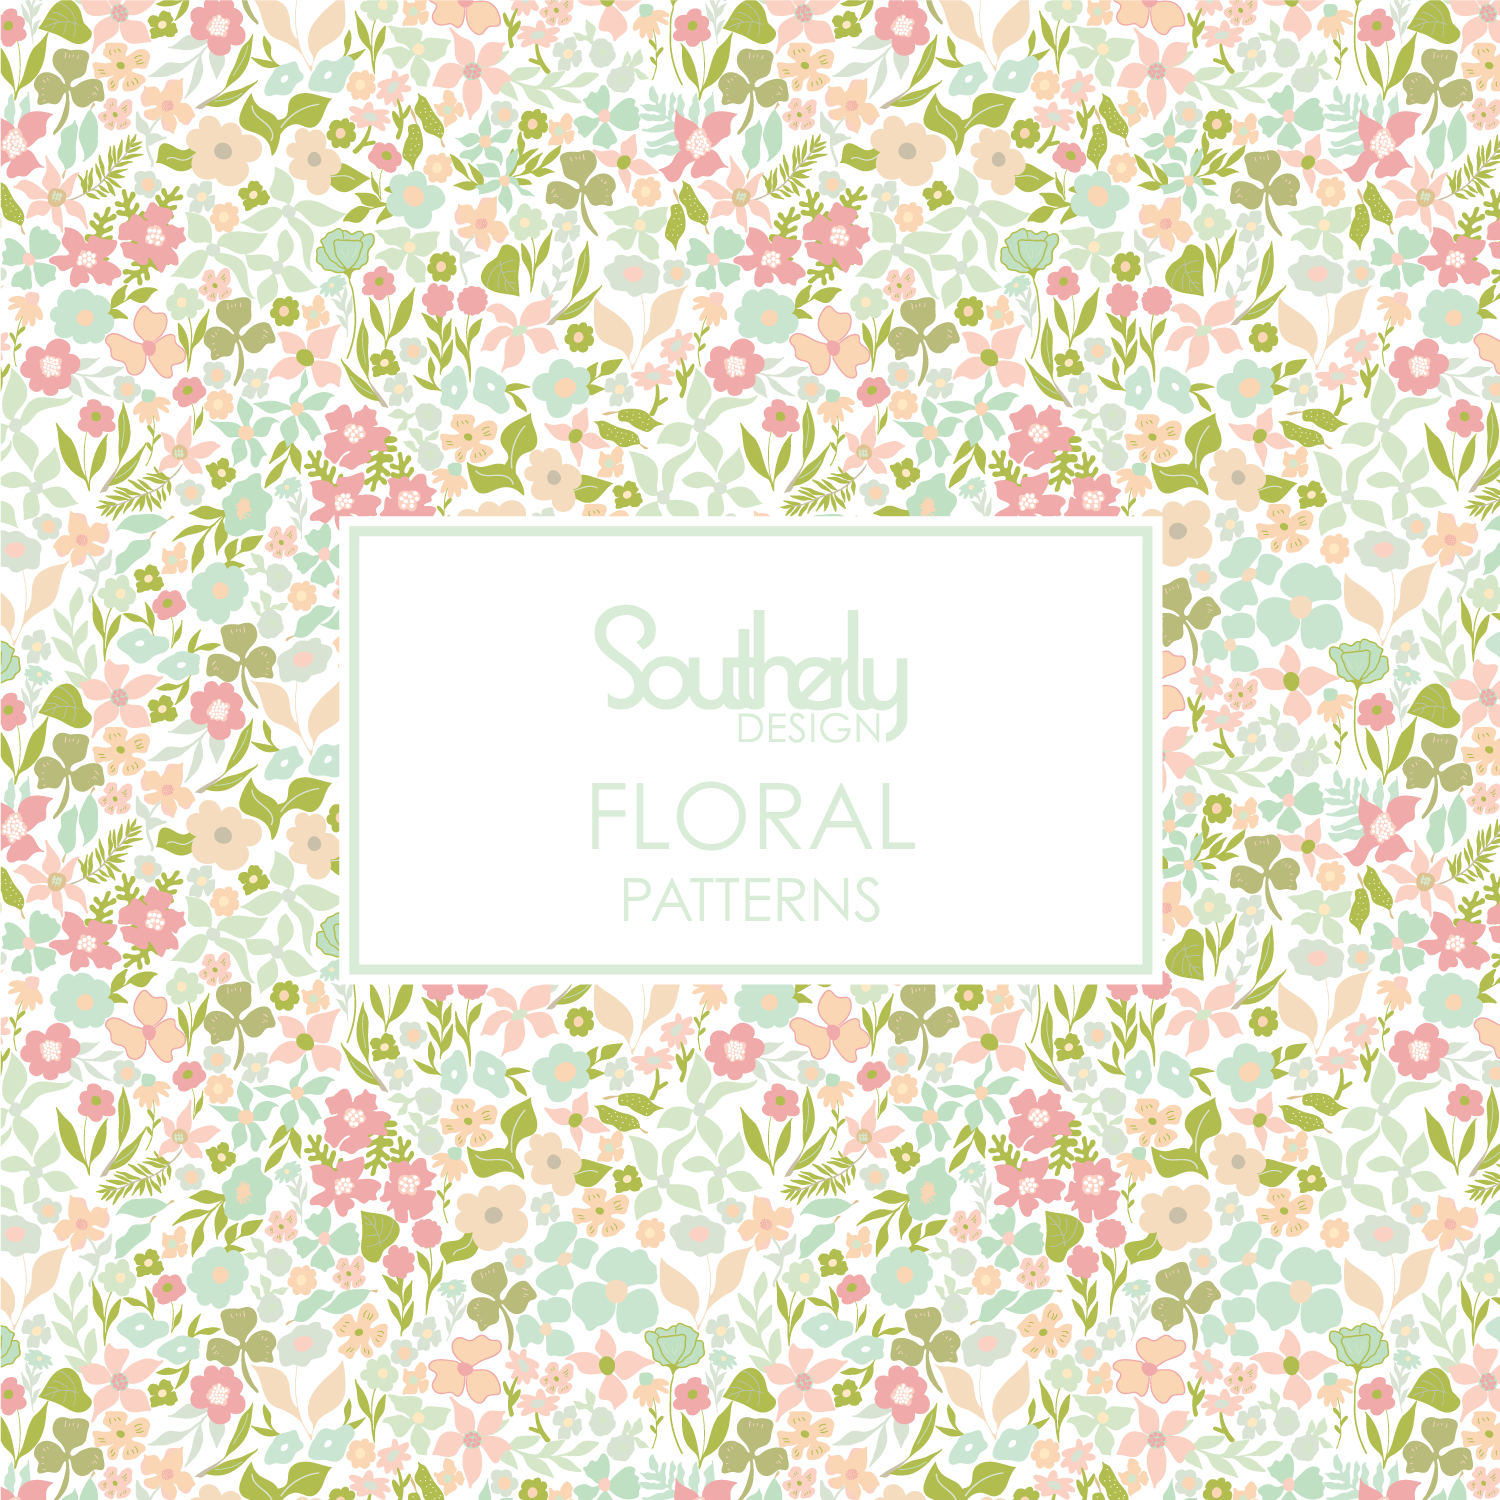 FLORAL-PATTERNS-SQ.png